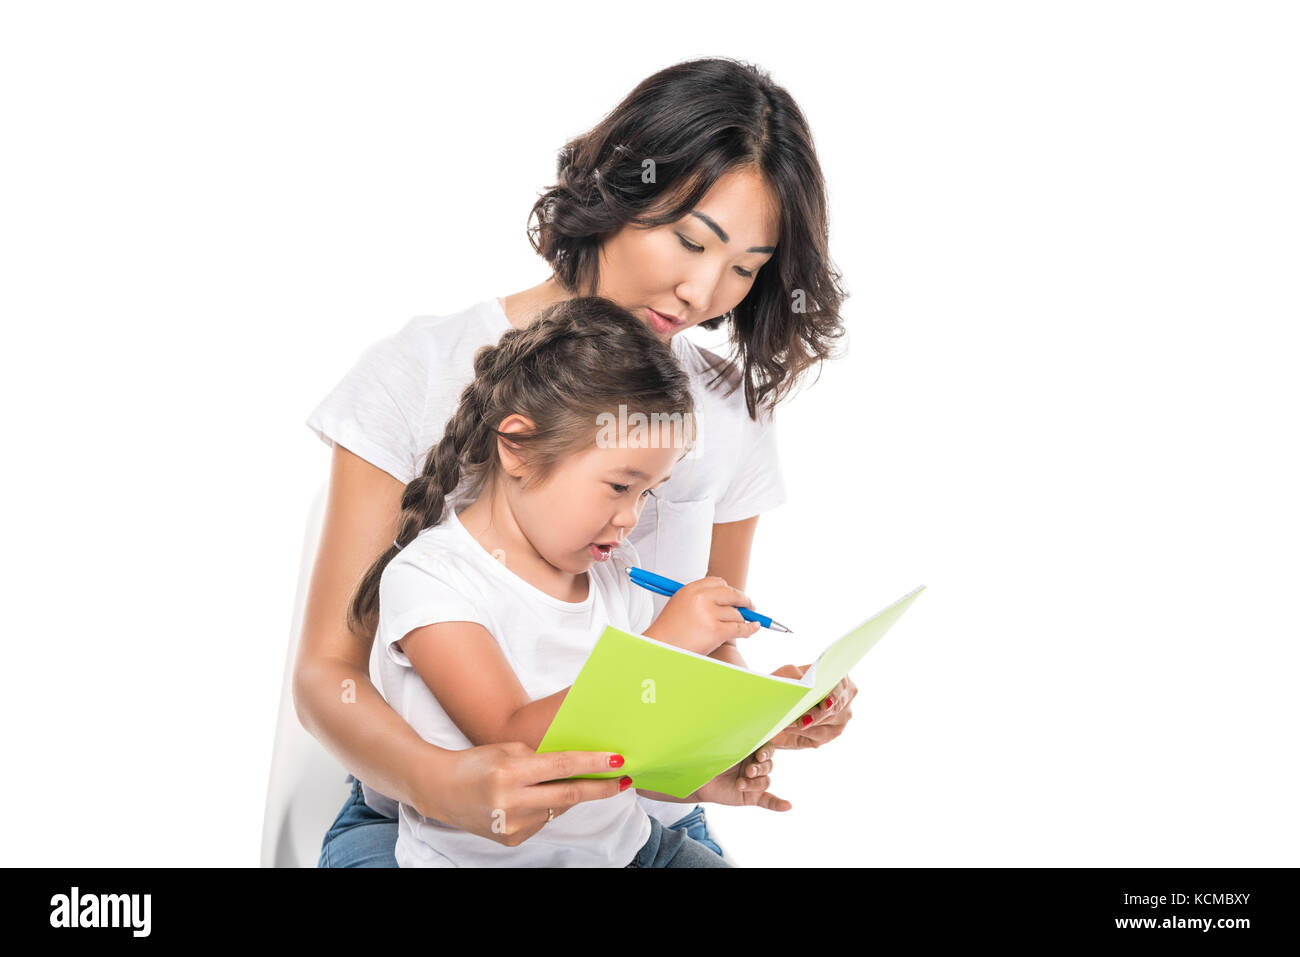 essay about mother and daughter Mother-daughter relationships essays: over 180,000 mother-daughter relationships essays, mother-daughter relationships term papers, mother-daughter relationships research paper, book reports 184 990 essays, term and research papers available for unlimited access.